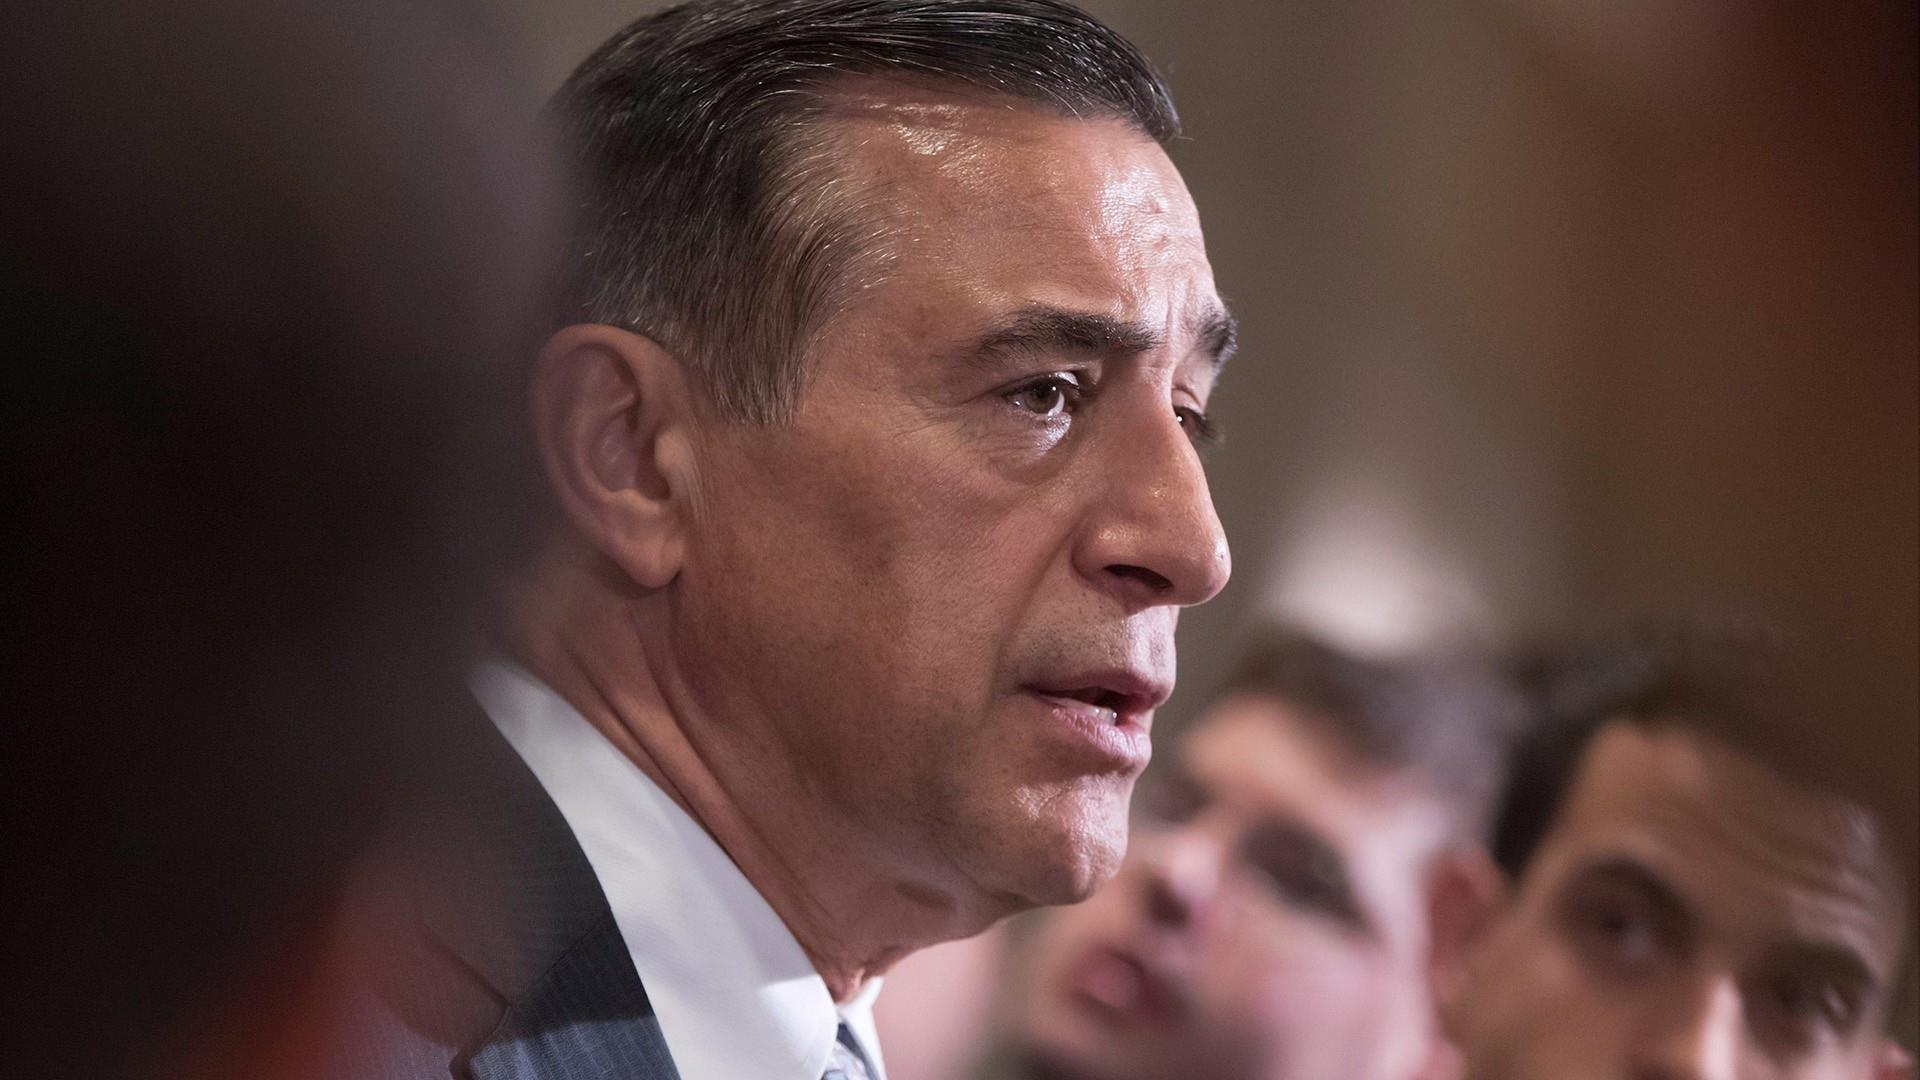 GOP Rep. Darrell Issa will not seek re-election in 2018